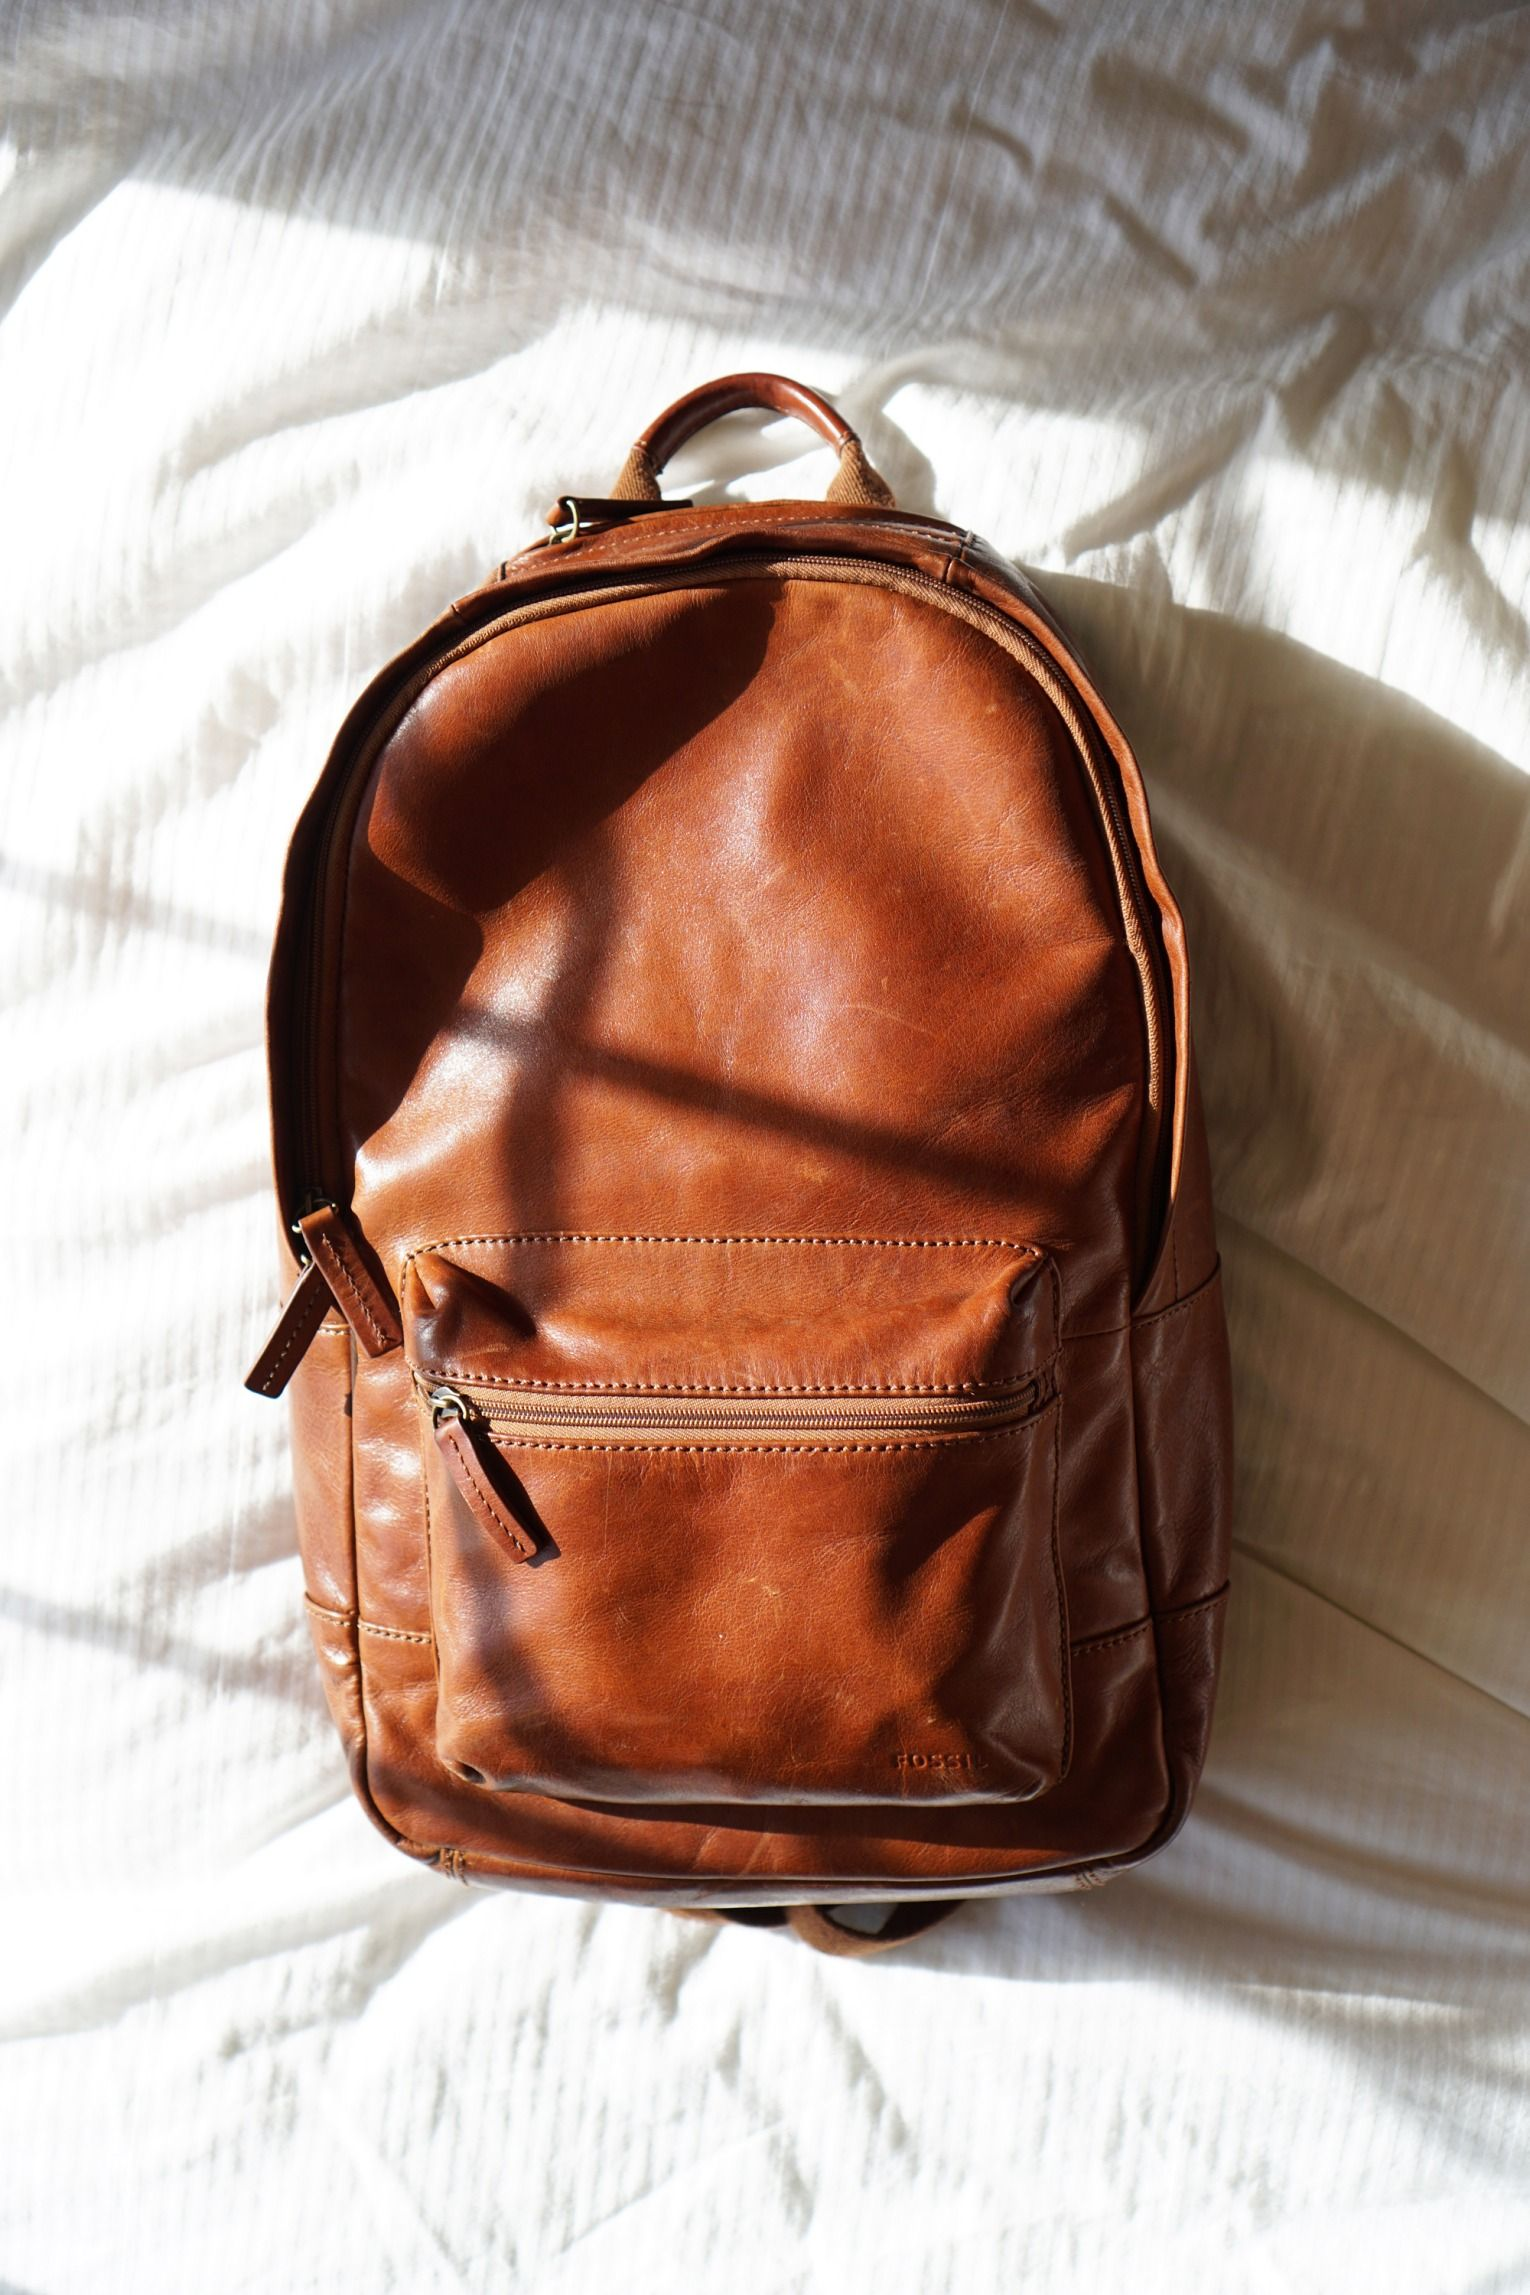 8fa8a7456a2a This Estate leather backpack will last for years and look good doing it.